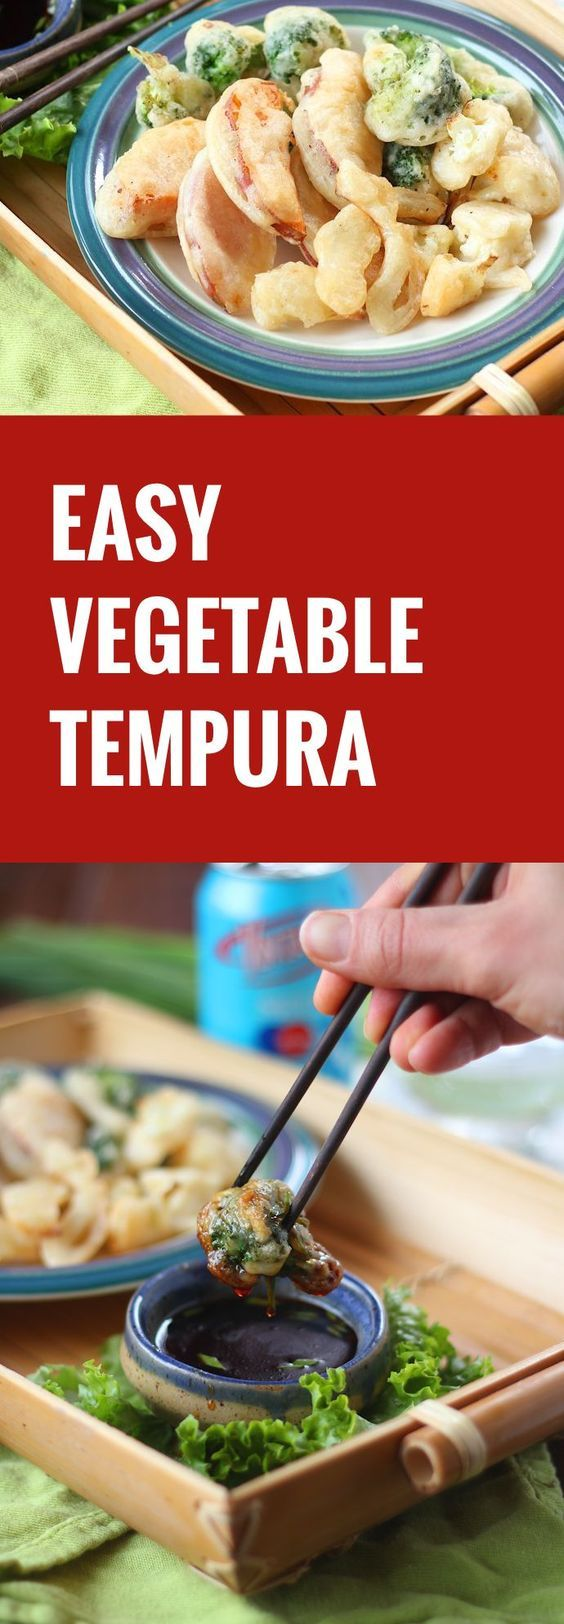 These tempura vegetables are coated in a light, three ingredient batter, shallow fried to crispy perfection, and served with soy sesame dipping sauce. #DrinkVintage #seltzer: